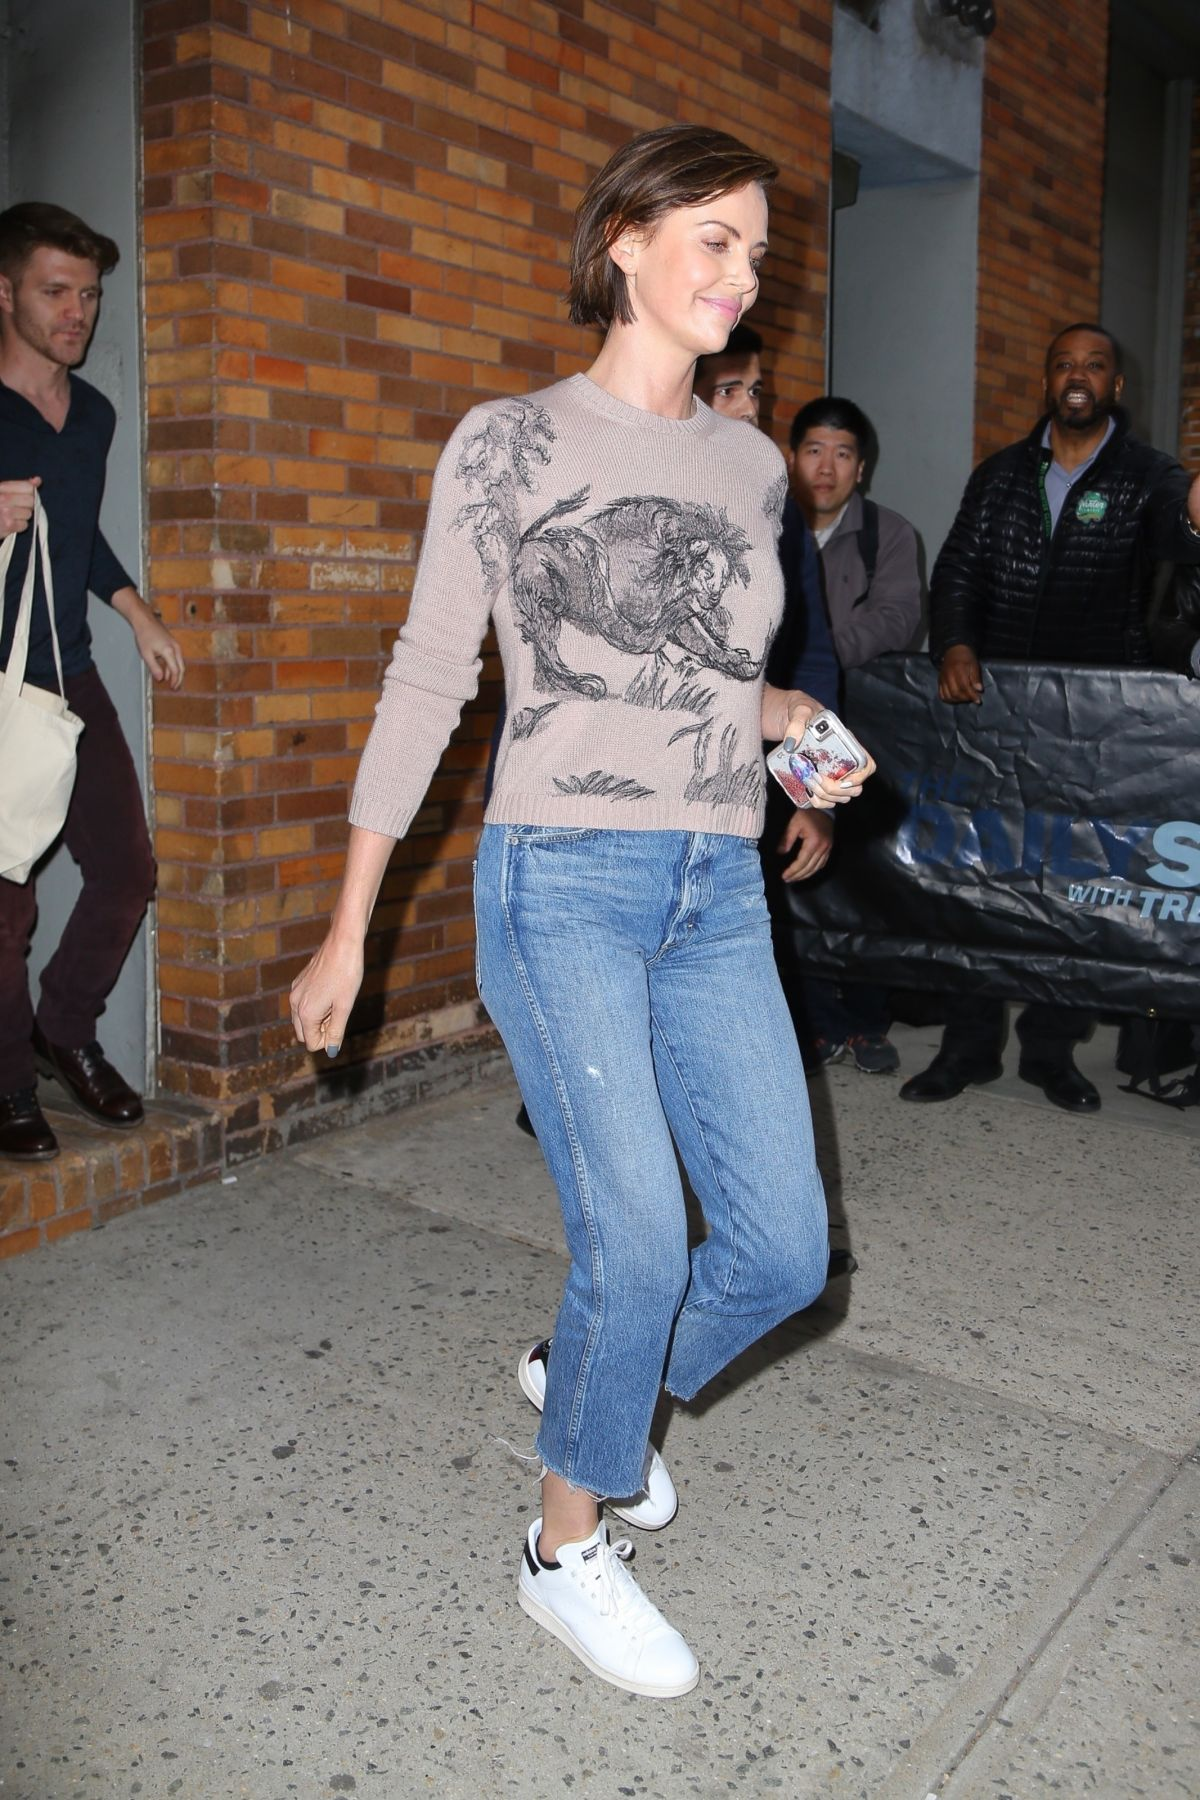 charlize theron leaves daily show in new york 05 02 2019. Black Bedroom Furniture Sets. Home Design Ideas